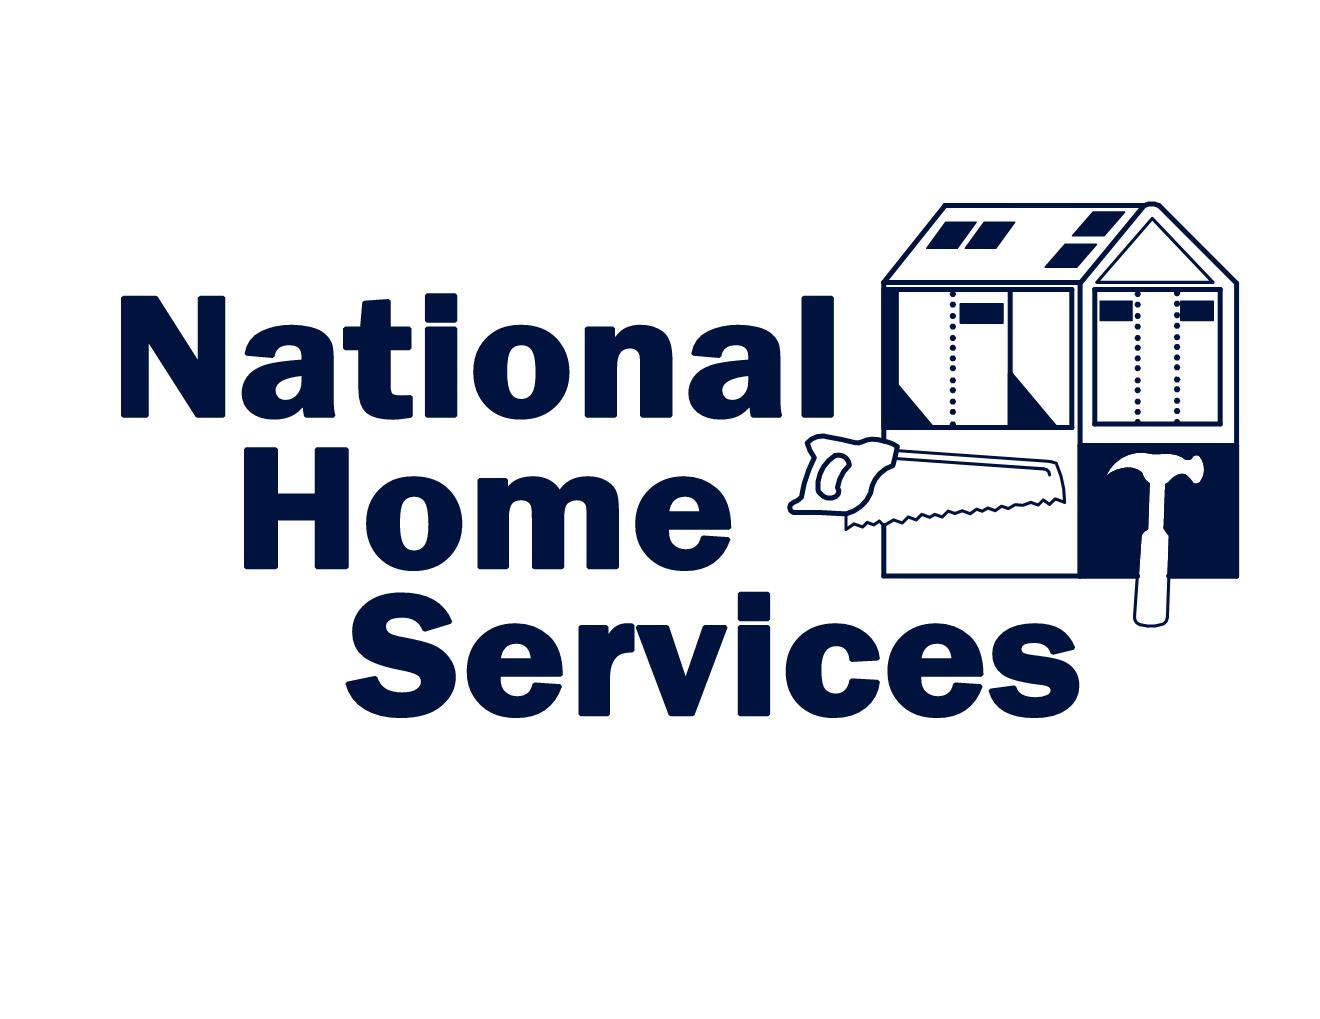 National Home Services